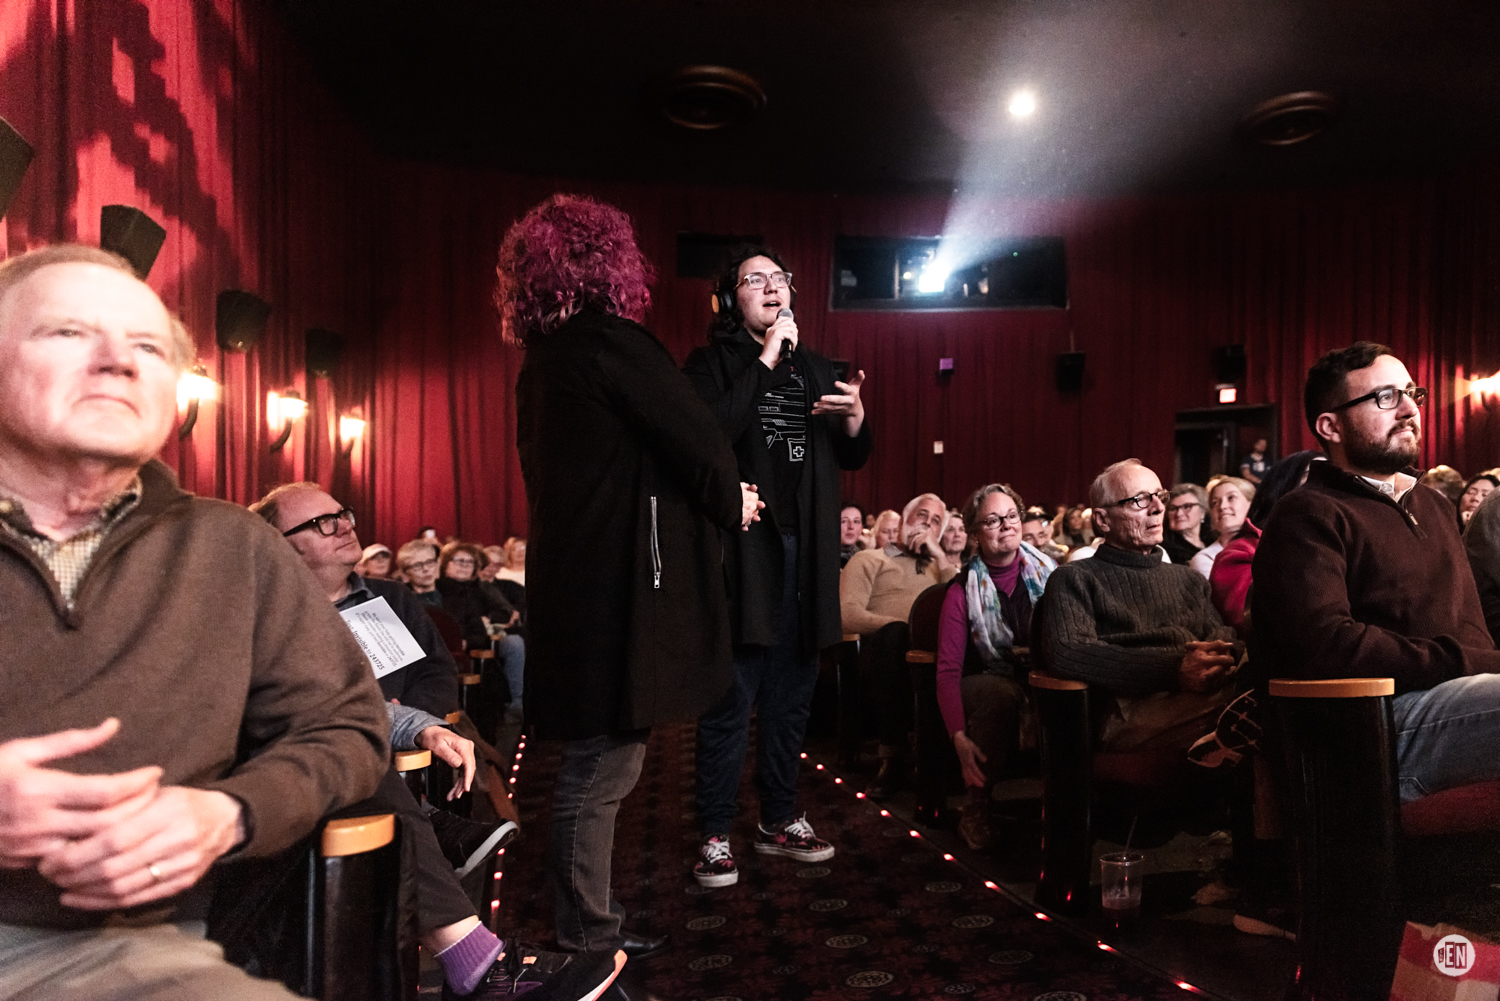 Audience Q&A at Belcourt Theater for the premier of 'Invisible'. Photo by Eric England.